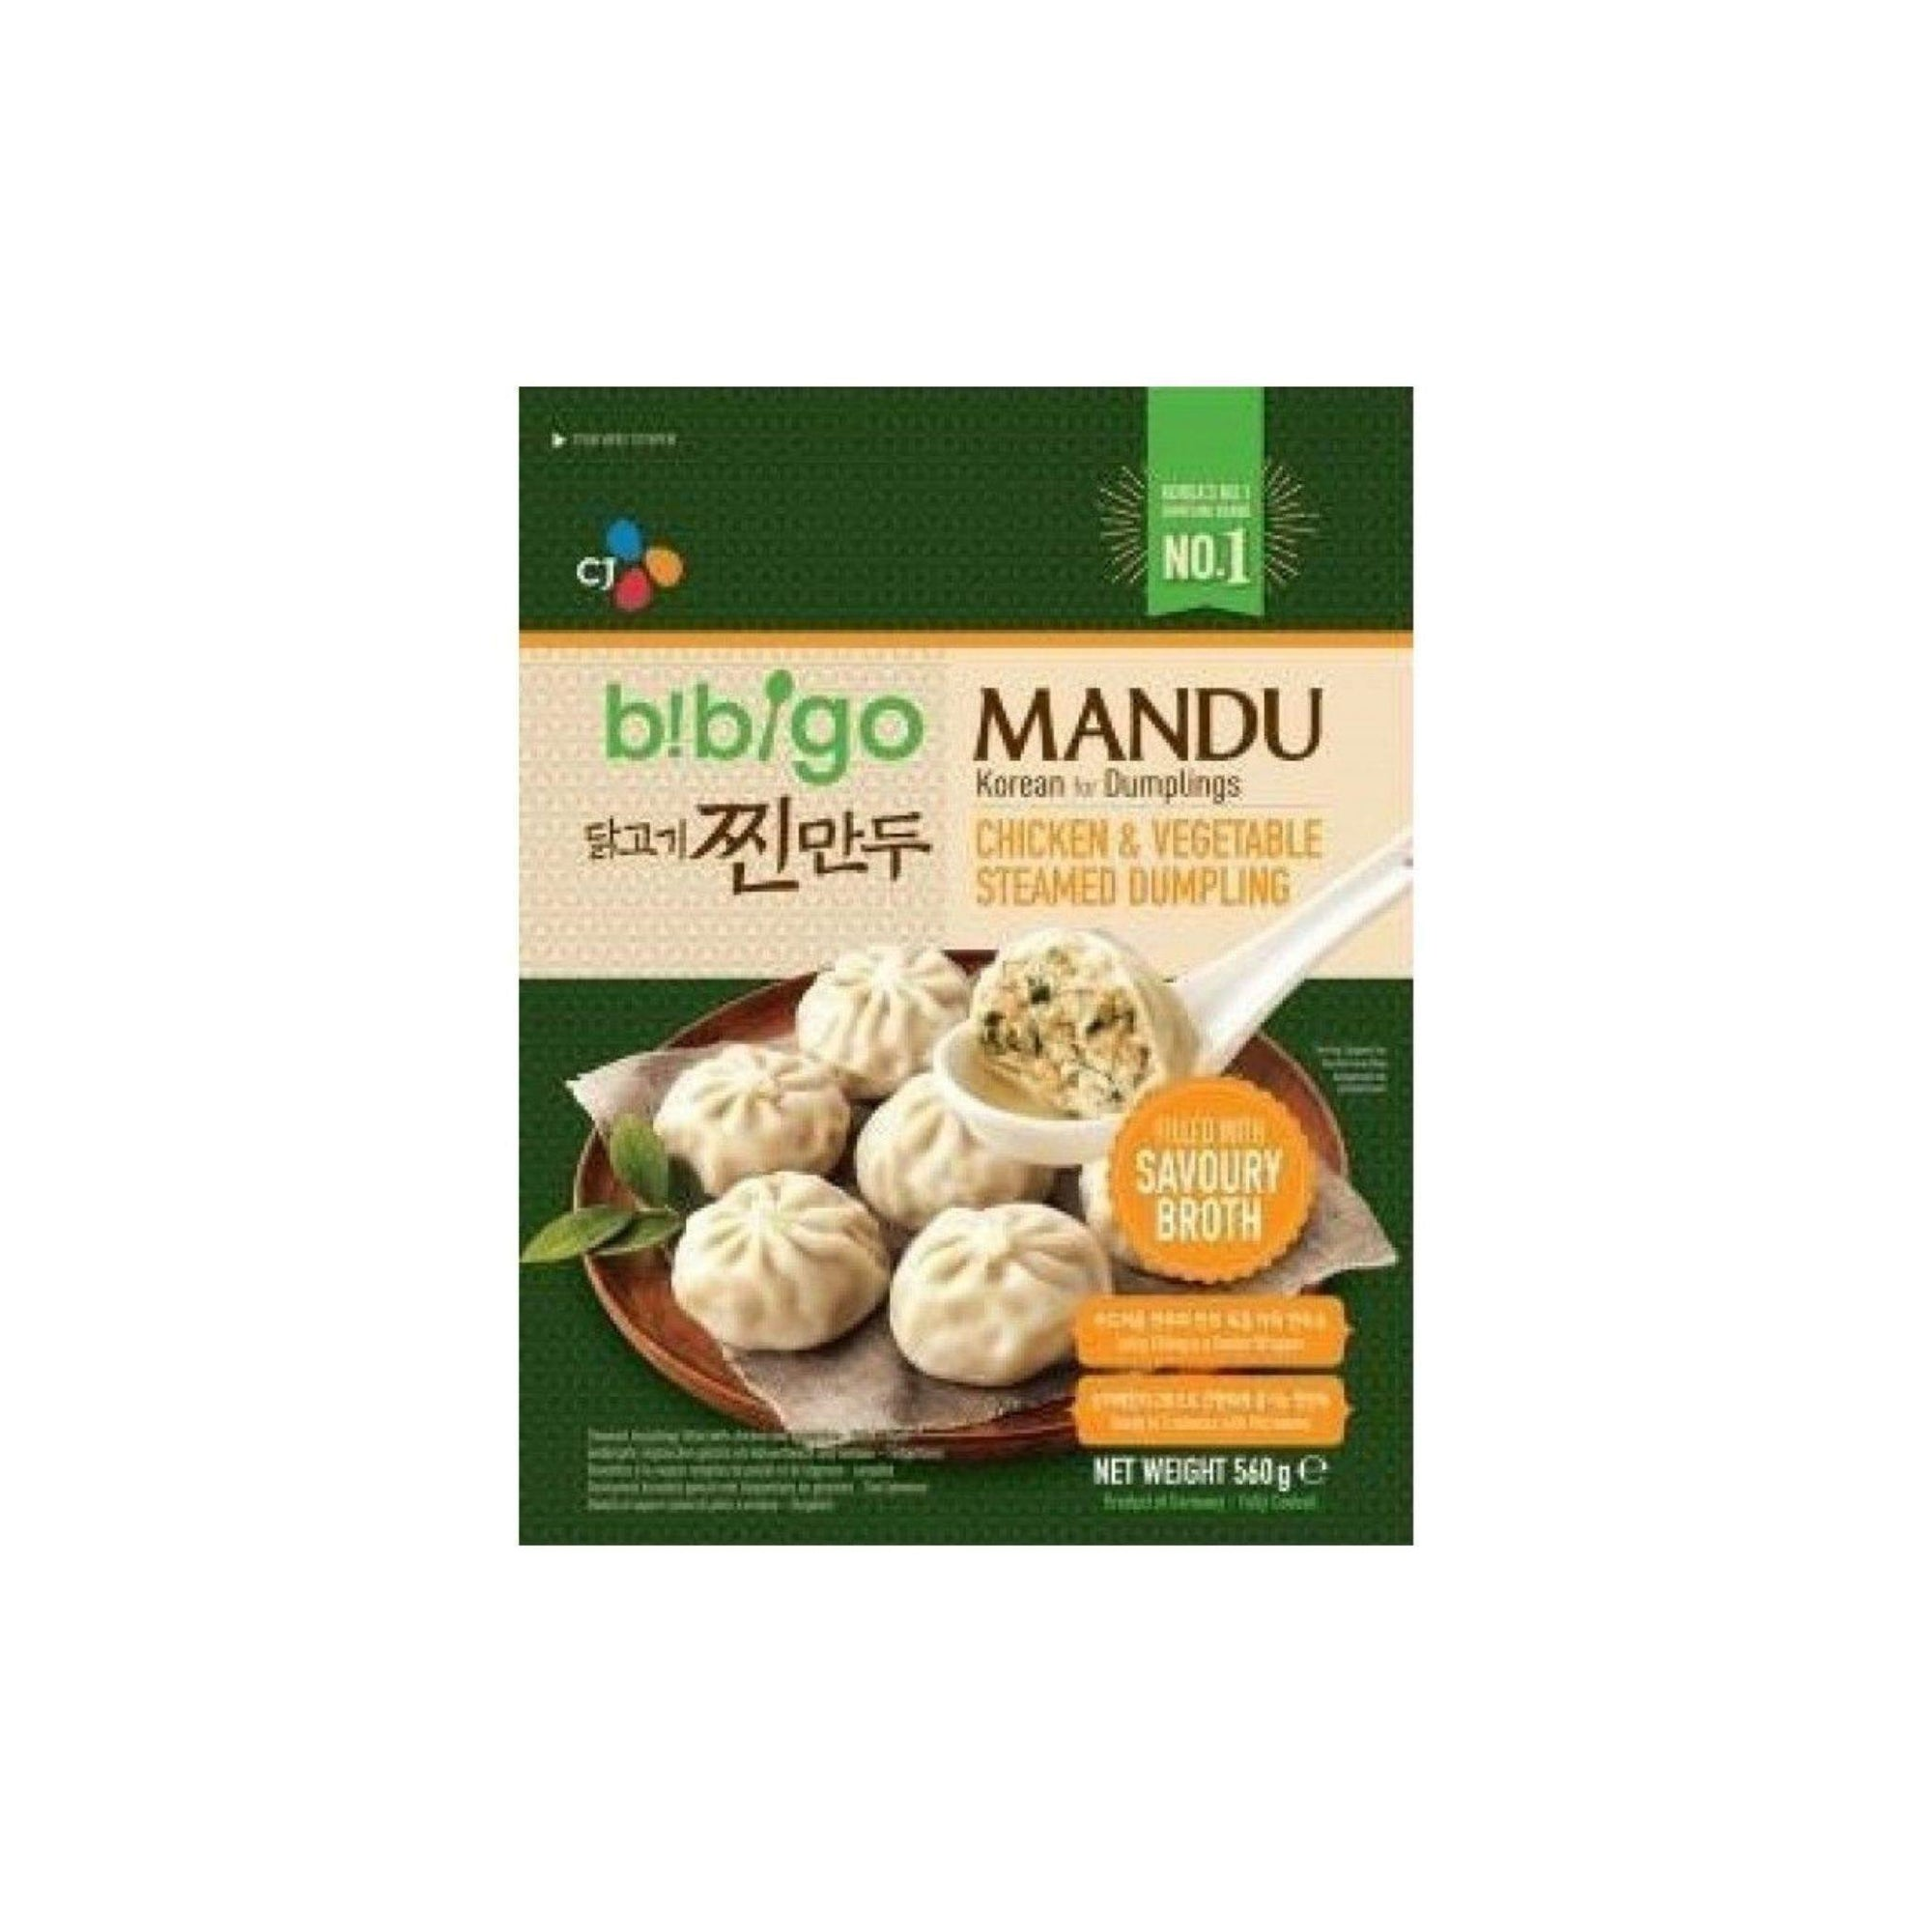 Bibigo Chicken and Veg Steamed Dumpling 560G - Asian Harvest